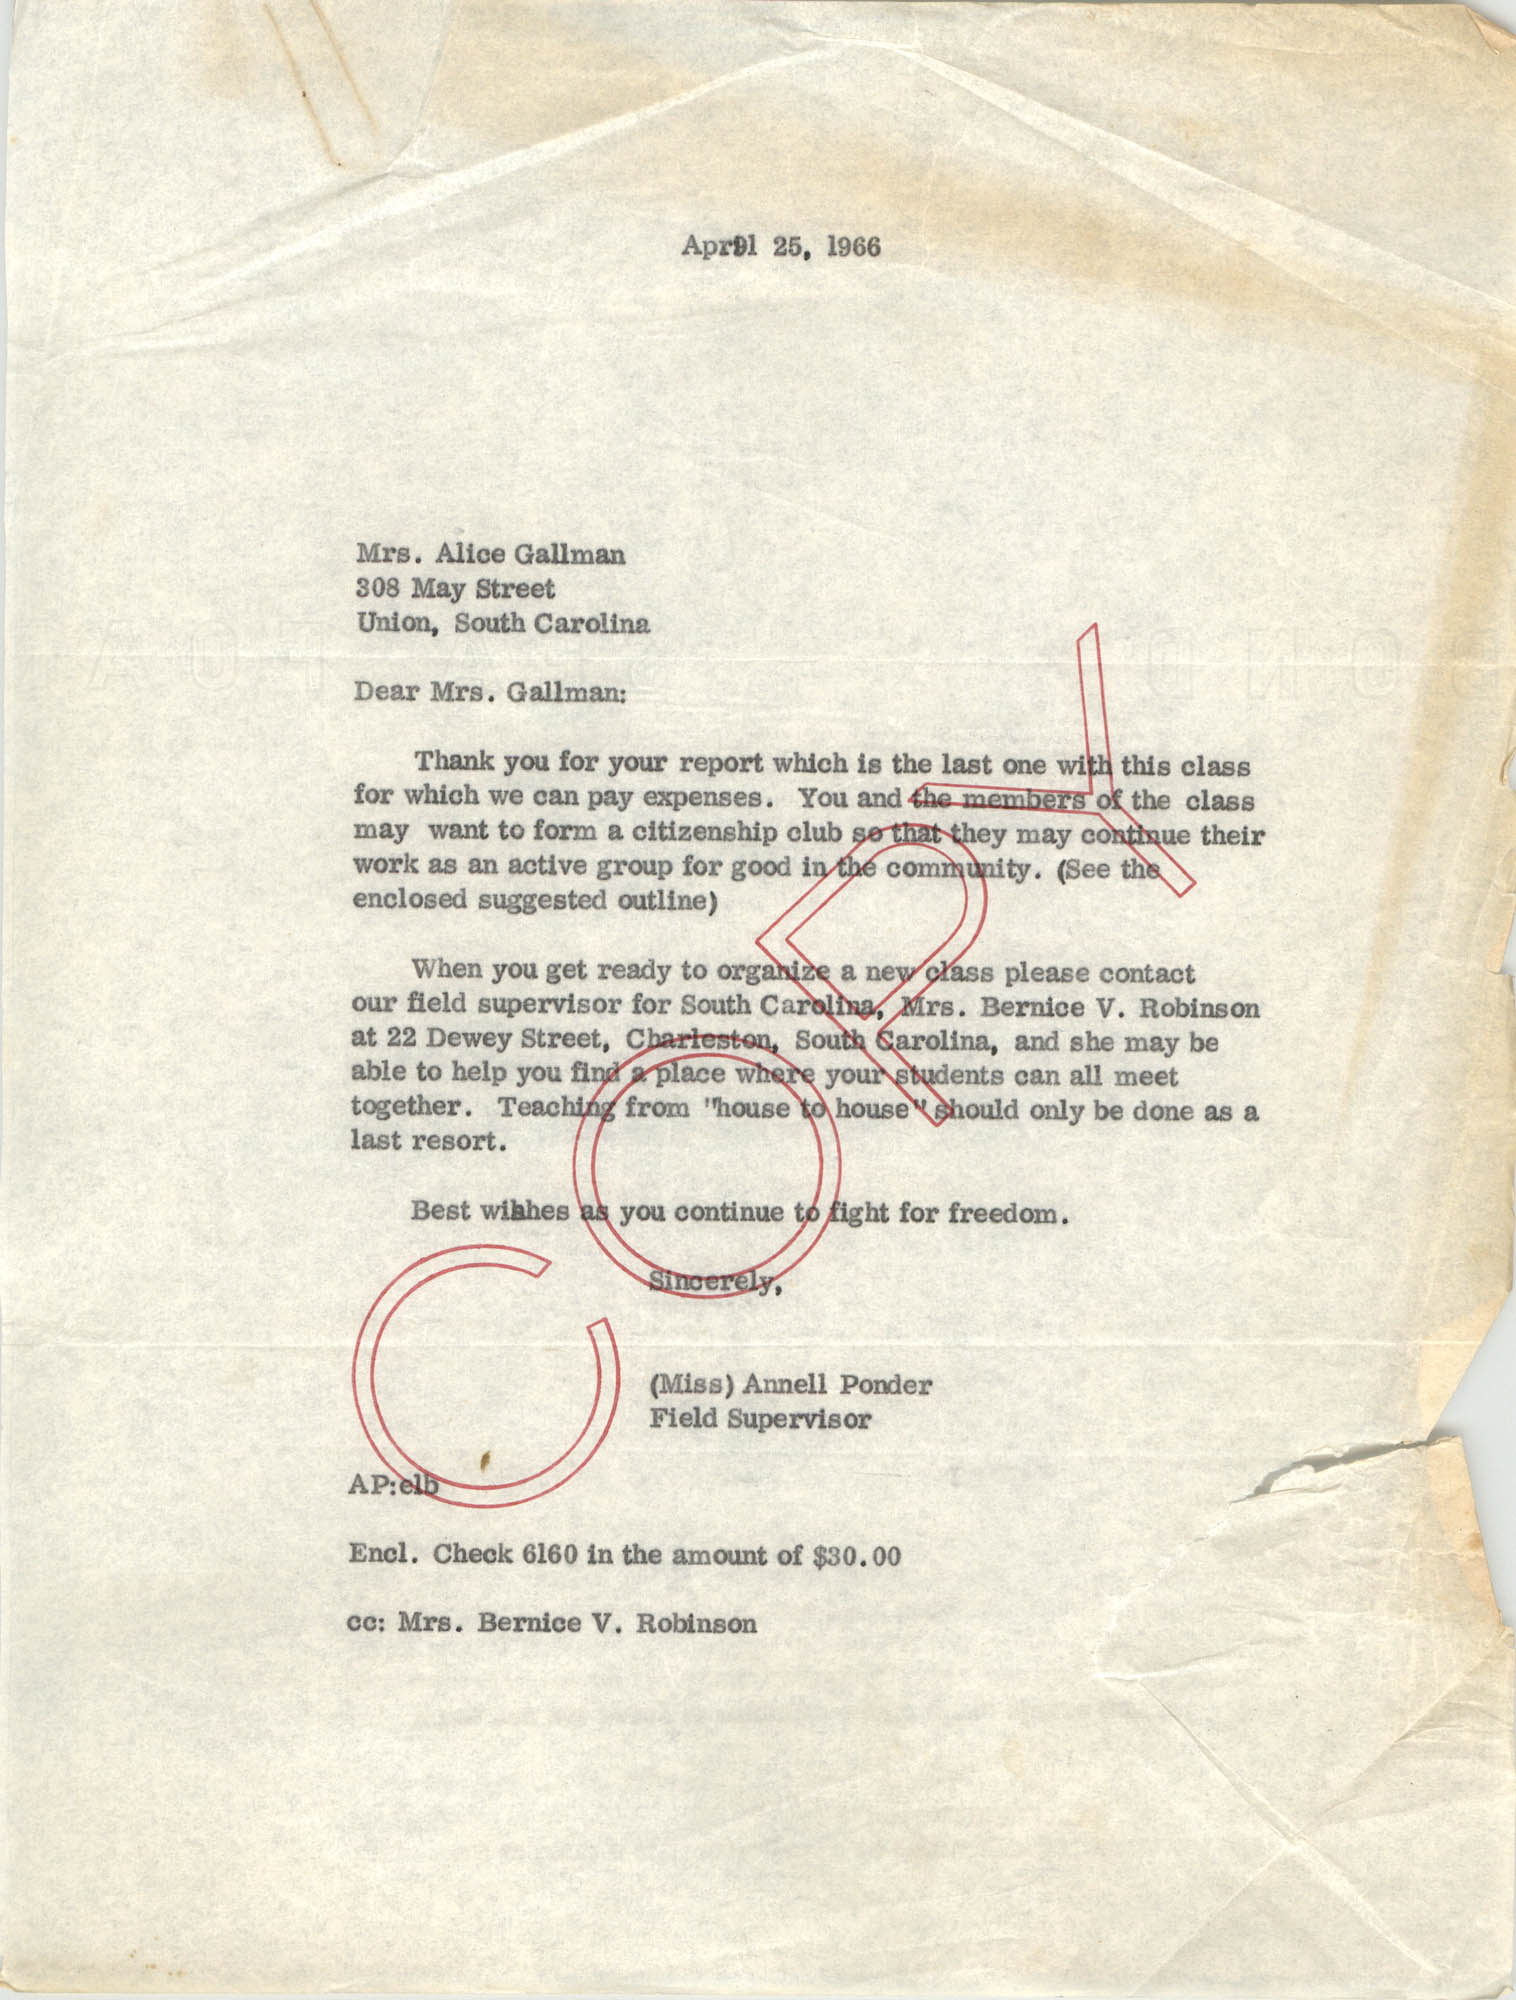 Letter from Annell Ponder to Alice Gallman, April 25, 1966